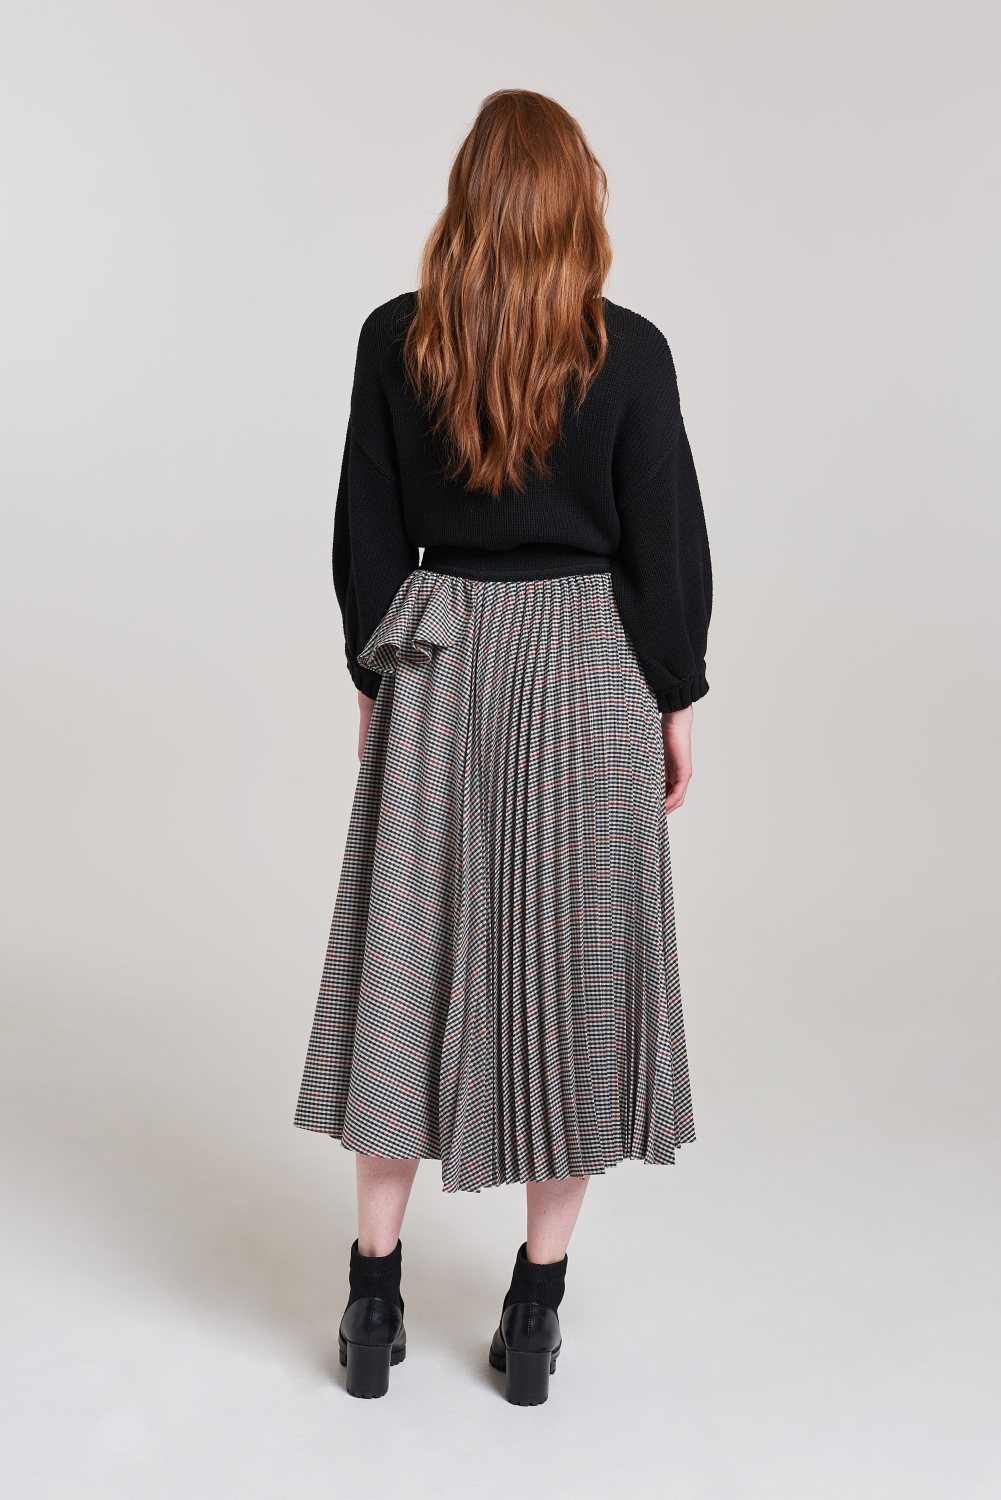 Palones Check Nancy Pleat and Ruffle Skirt